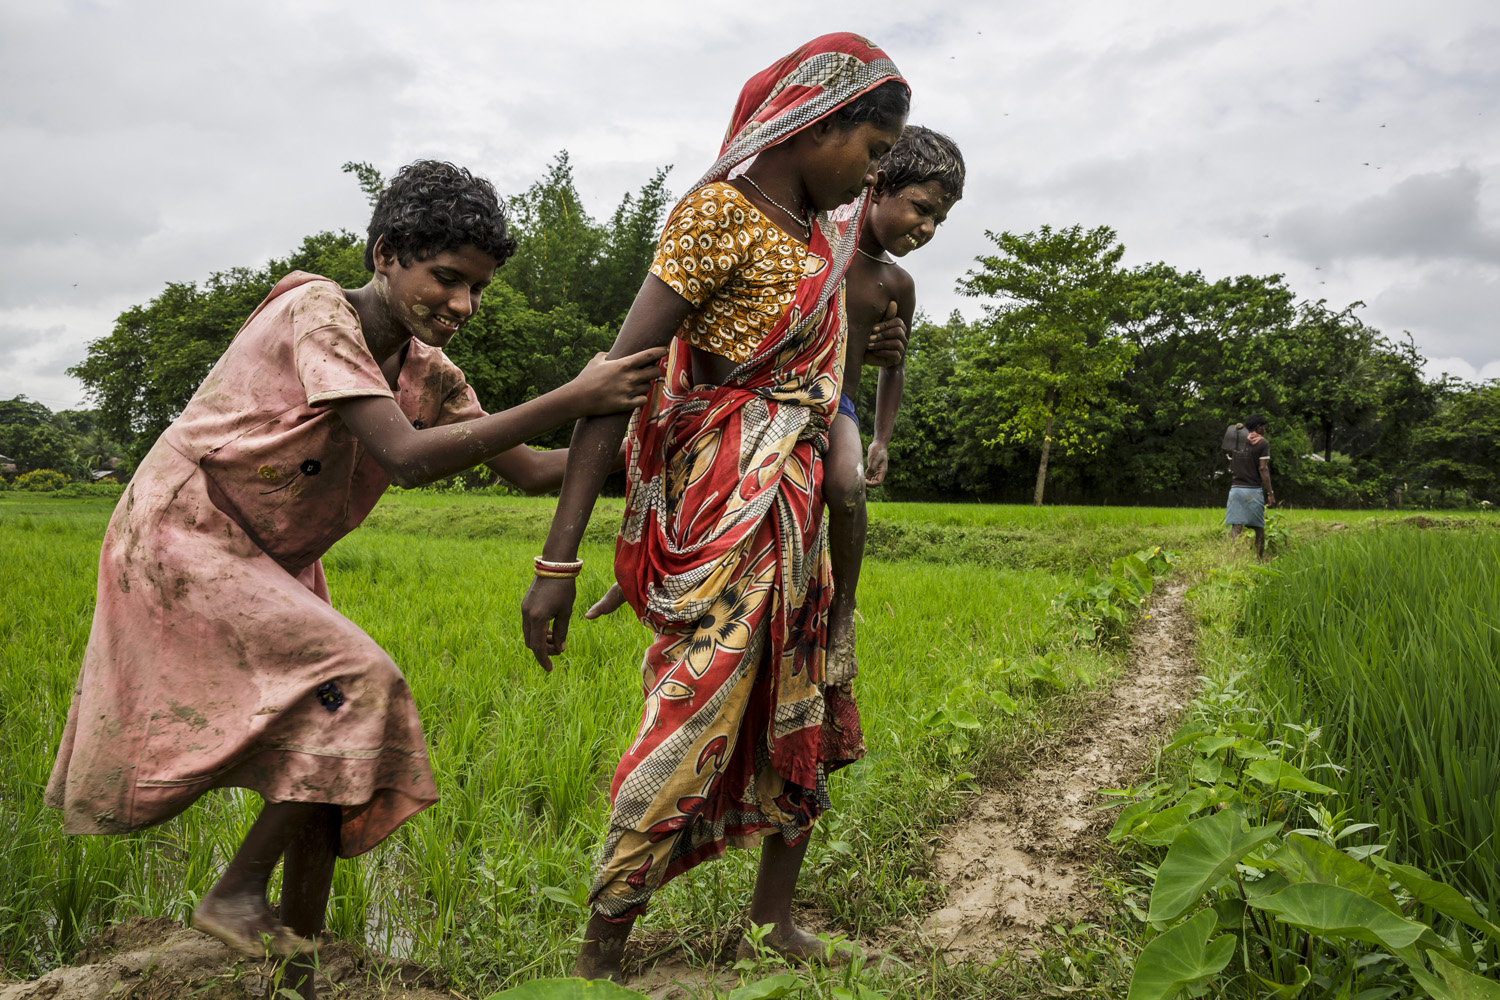 Sonia and Anita Singh follow their mother on her through fields, Oct. 19, 2013 in West Bengal, India.